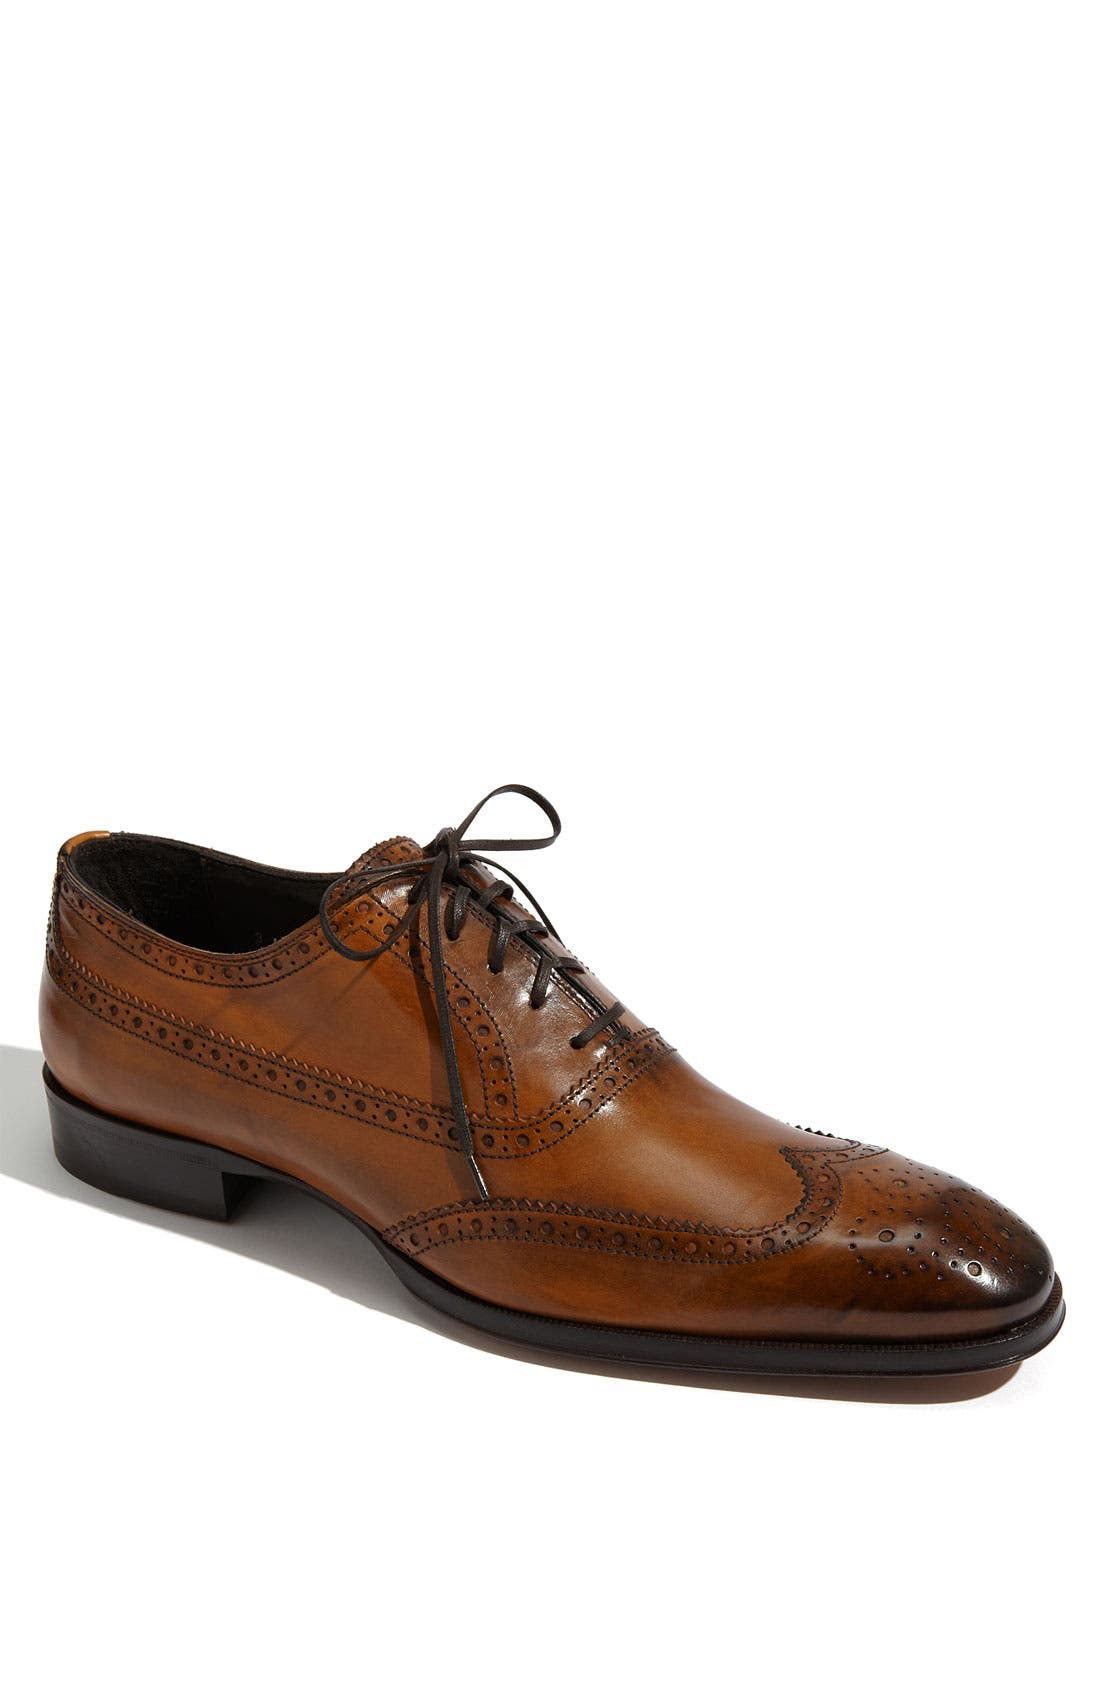 Main Image - To Boot New York 'Windsor' Wingtip Oxford (Men)